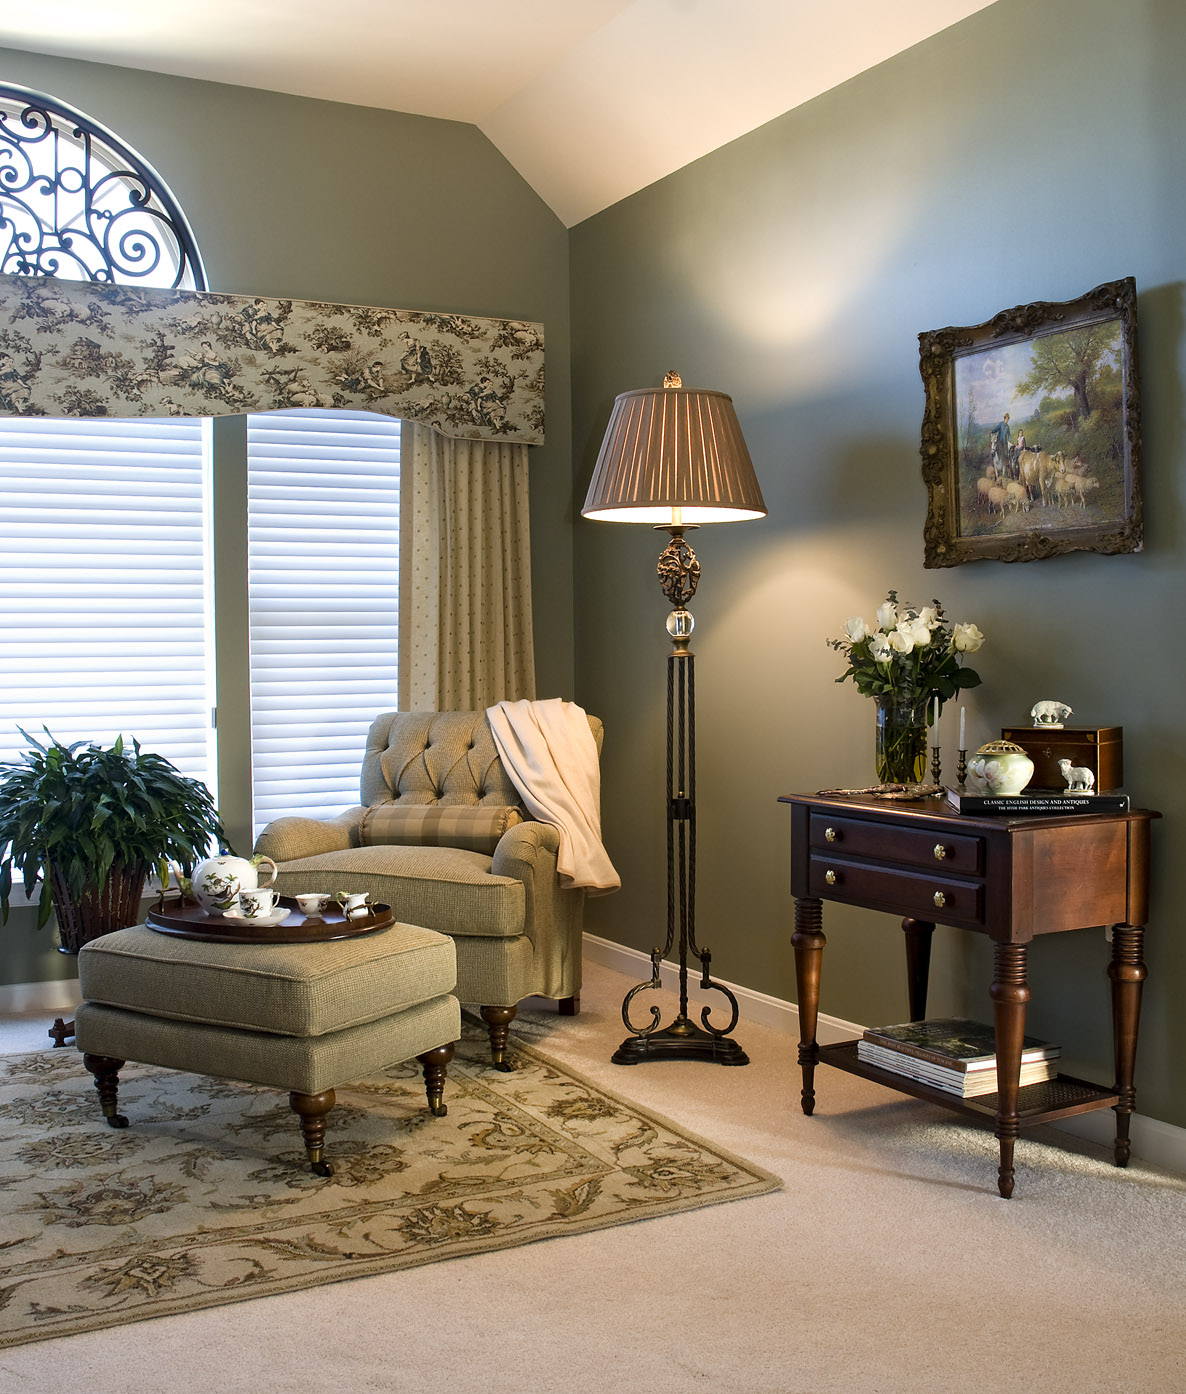 The Abc S Of Decorating Q Is For Quick Decorating Tips Decorating Den Interiors Blog